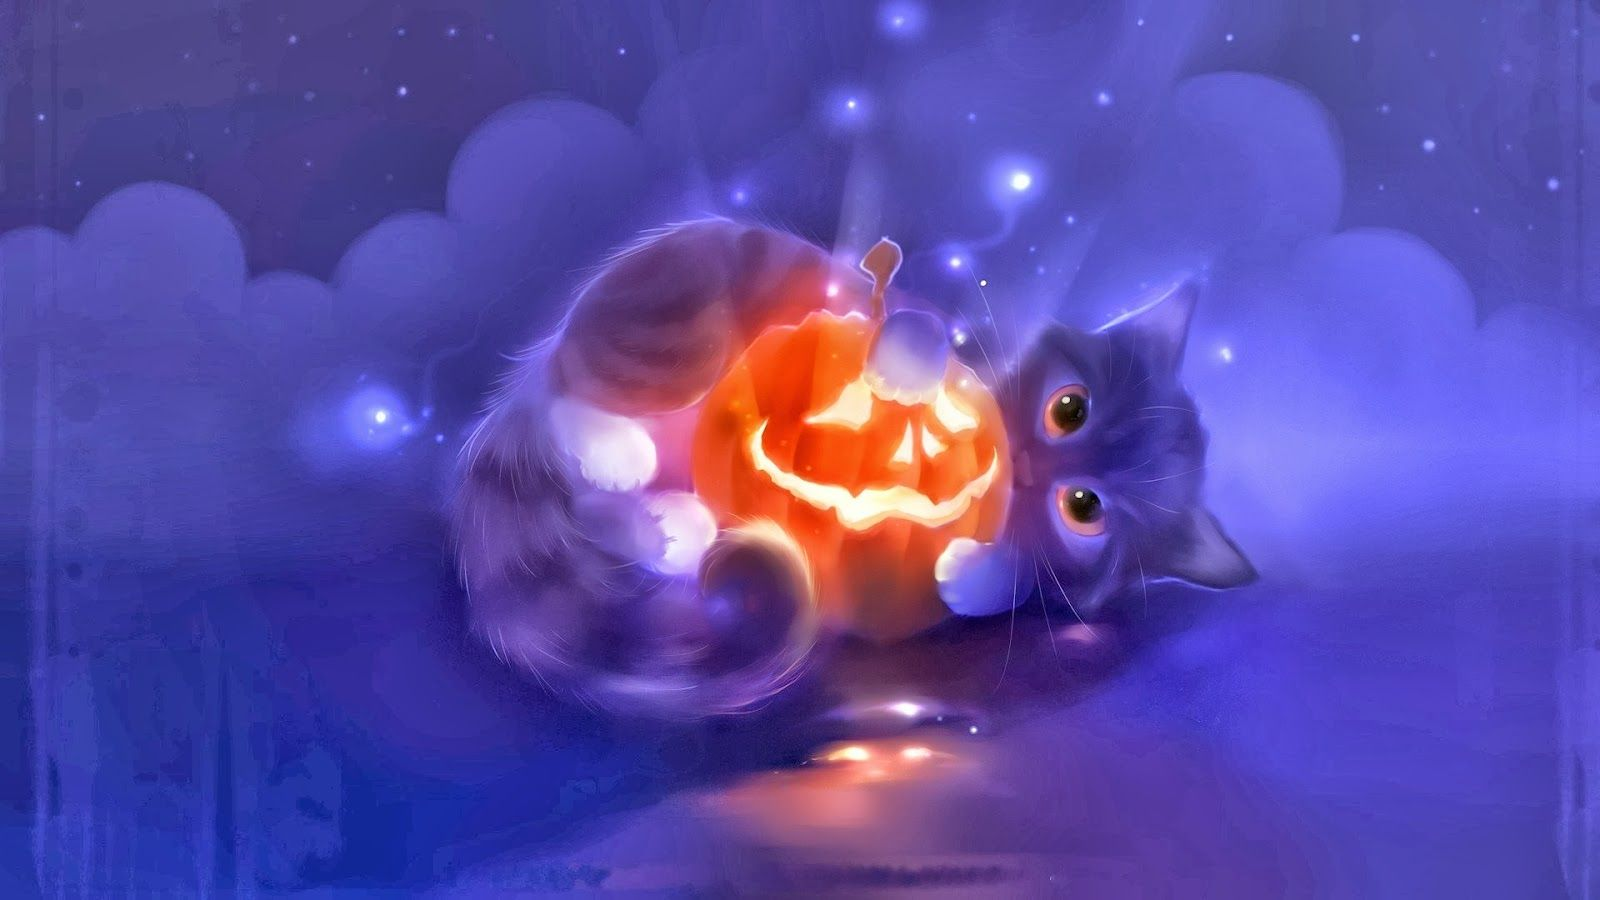 Halloween Cats And Kittens Halloween Cute Cat Animal Pumpkin Lantern Widescreen Hd Wallpaper X5 Halloween Wallpaper Cute Cat Illustration Cute Wallpapers